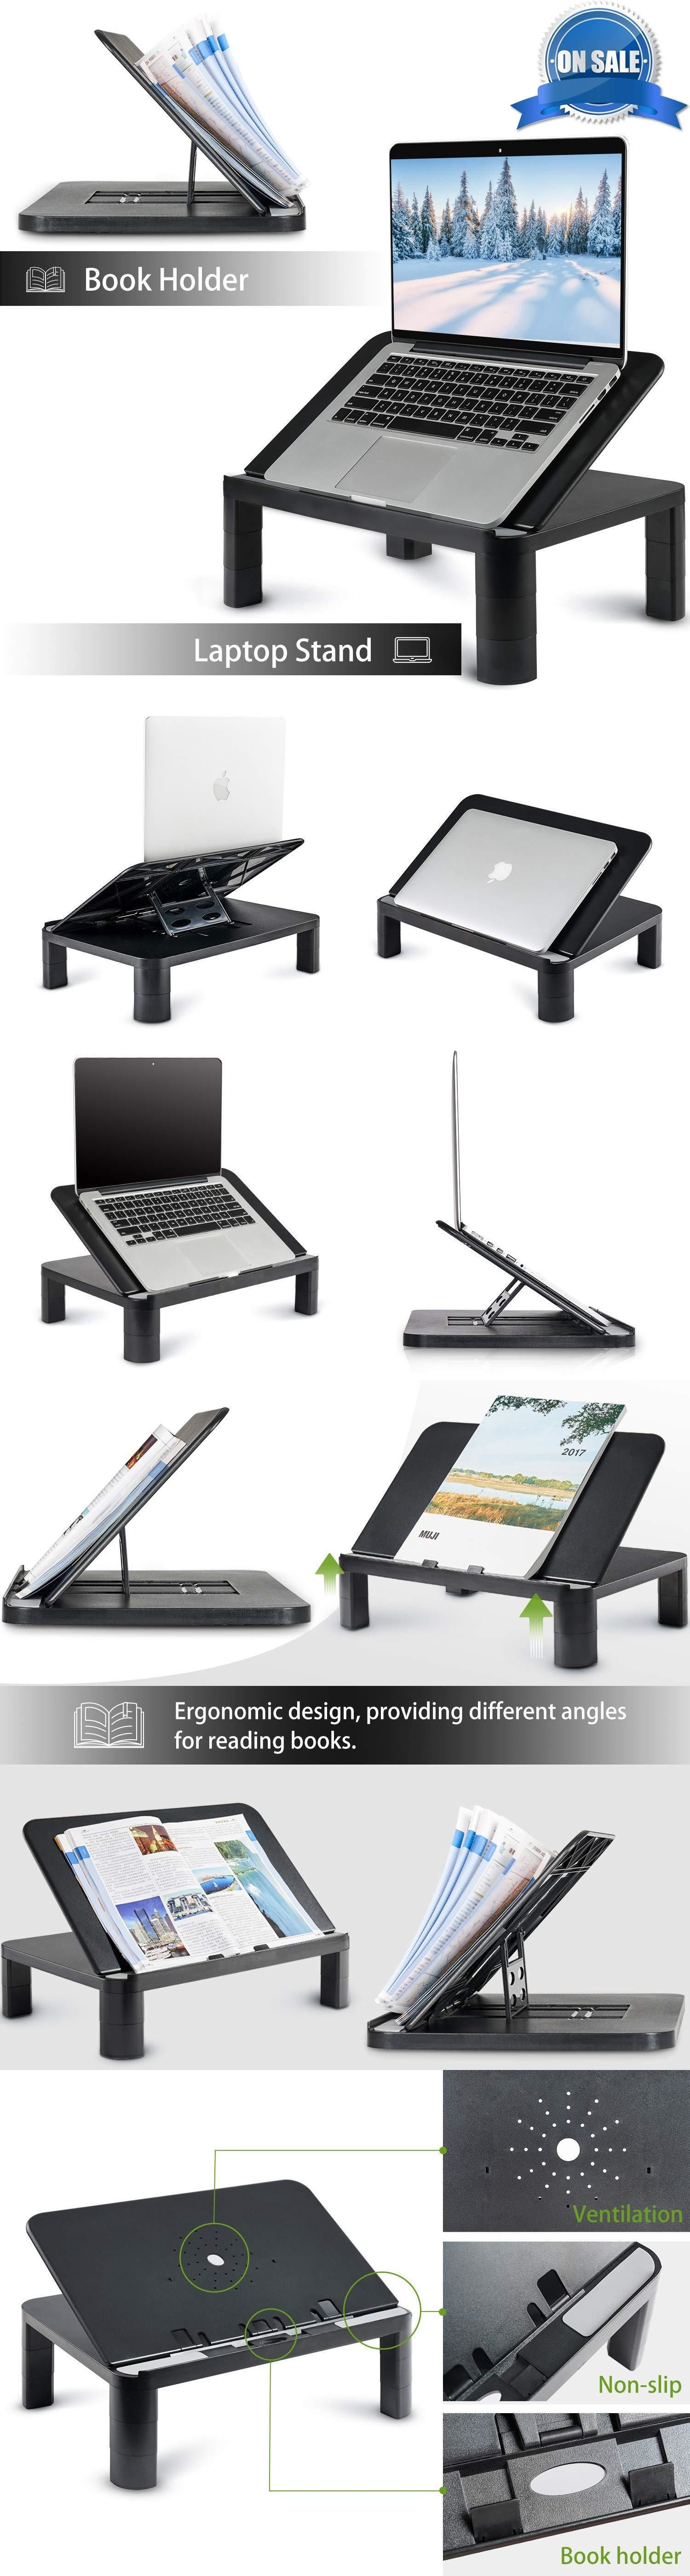 Stands Holders and Car Mounts 116346 Laptop Stand Riser